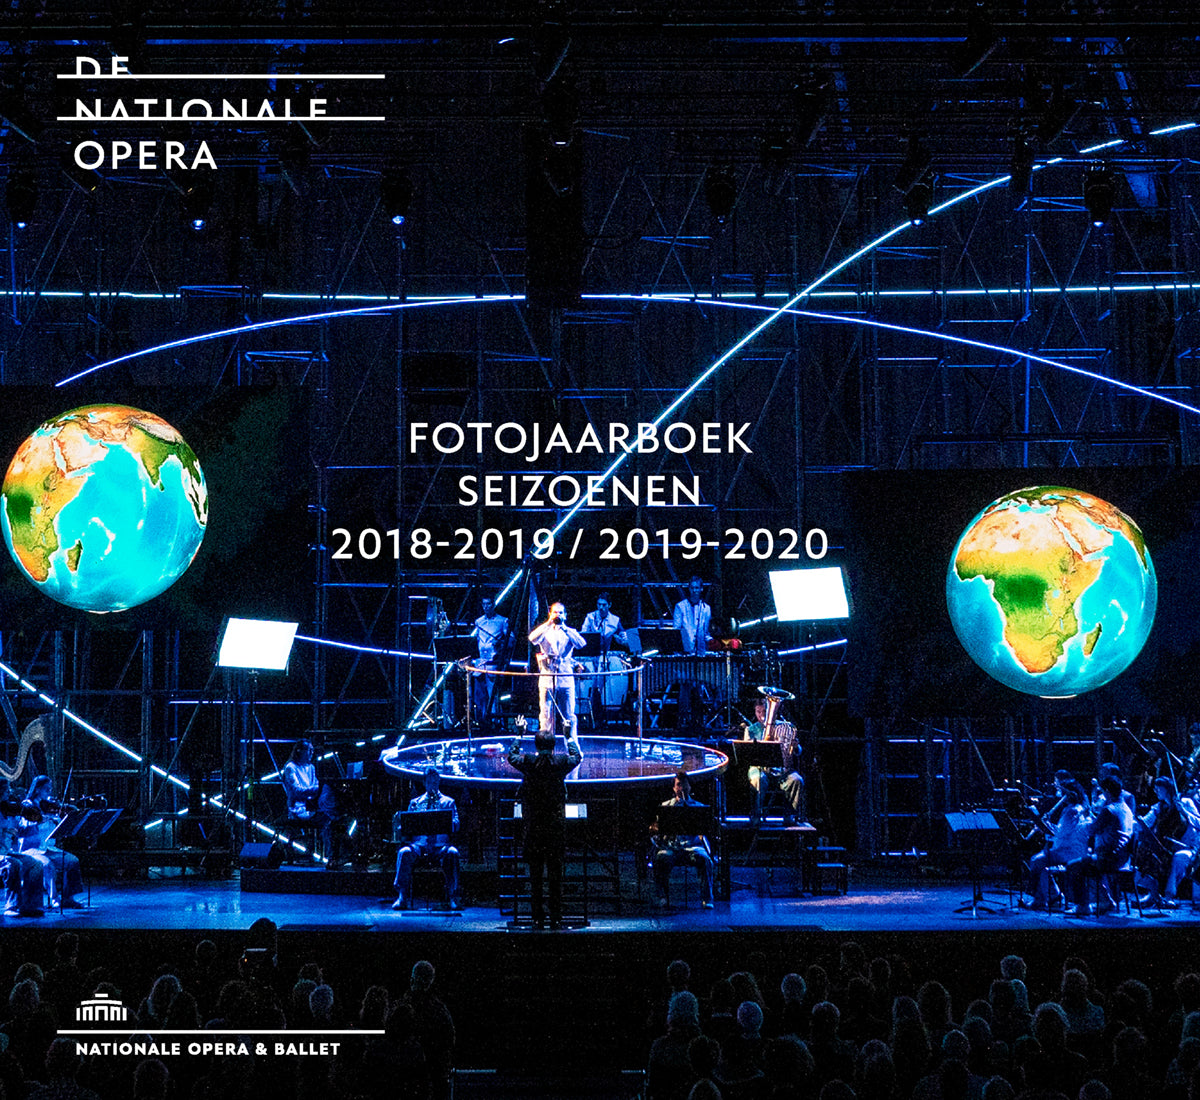 Fotojaarboek 18-19 & 19-20 De Nationale Opera